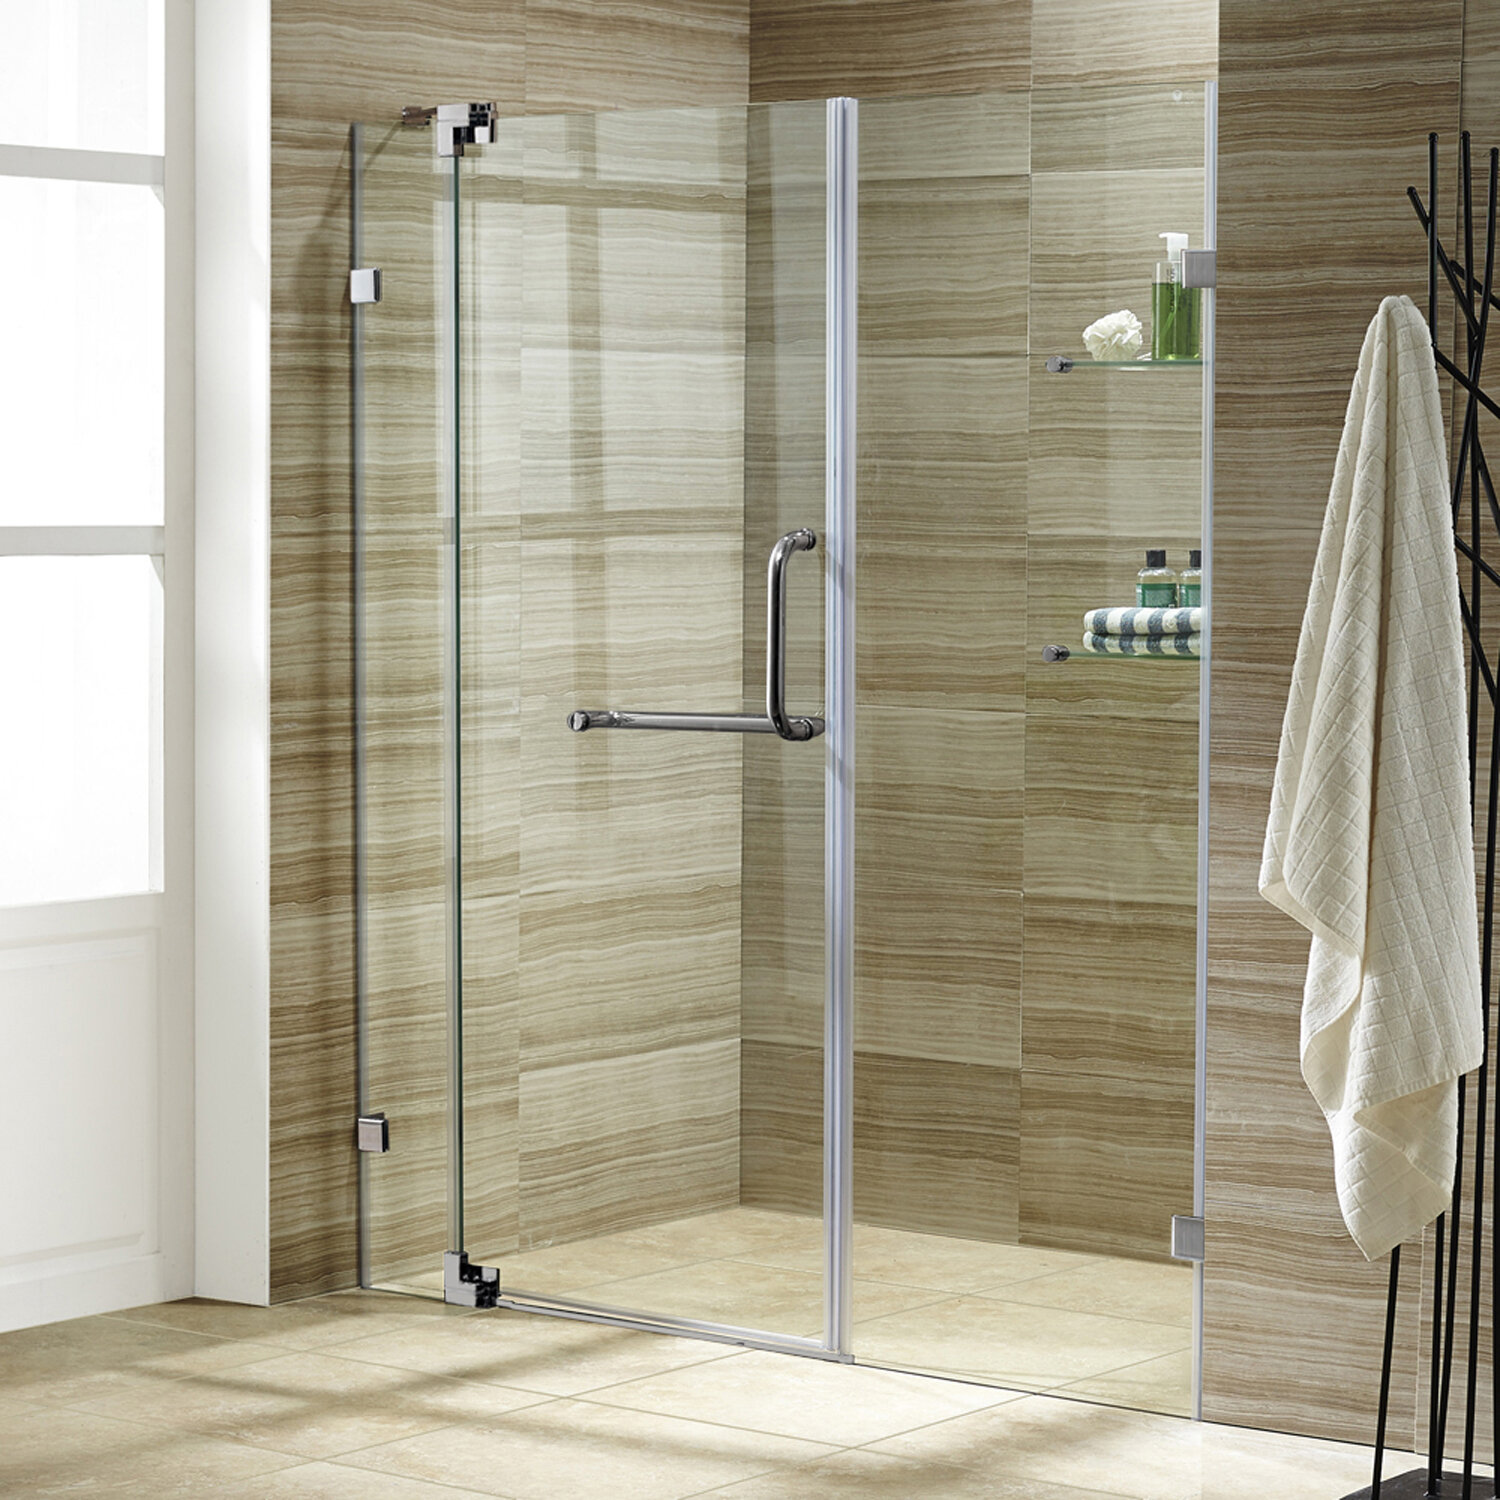 Vigo Pirouette 66 X 72 Pivot Frameless Shower Door Reviews Wayfair